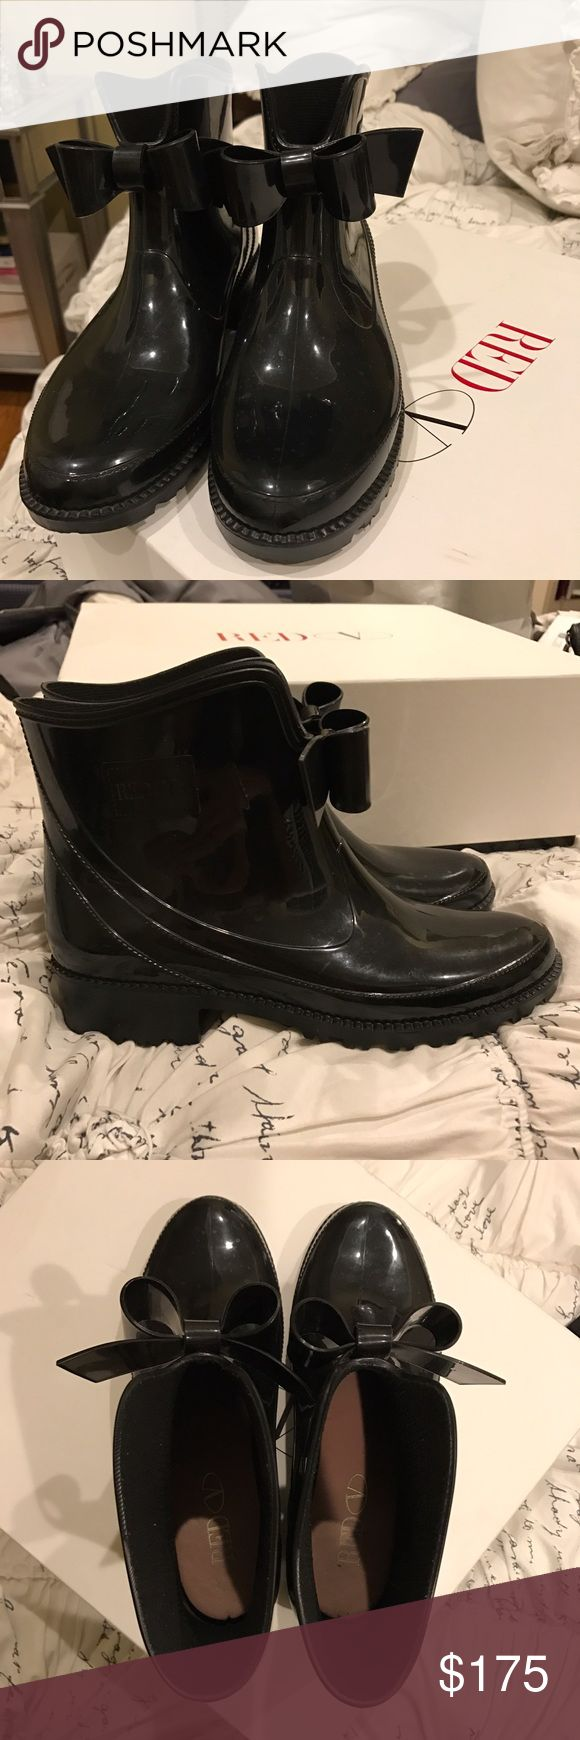 VALENTINO rain boots size 38 BARELY worn Durable black Valentino Red rain boots. Size 38. Barely worn. Authenticity guaranteed. RED Valentino Shoes Winter & Rain Boots